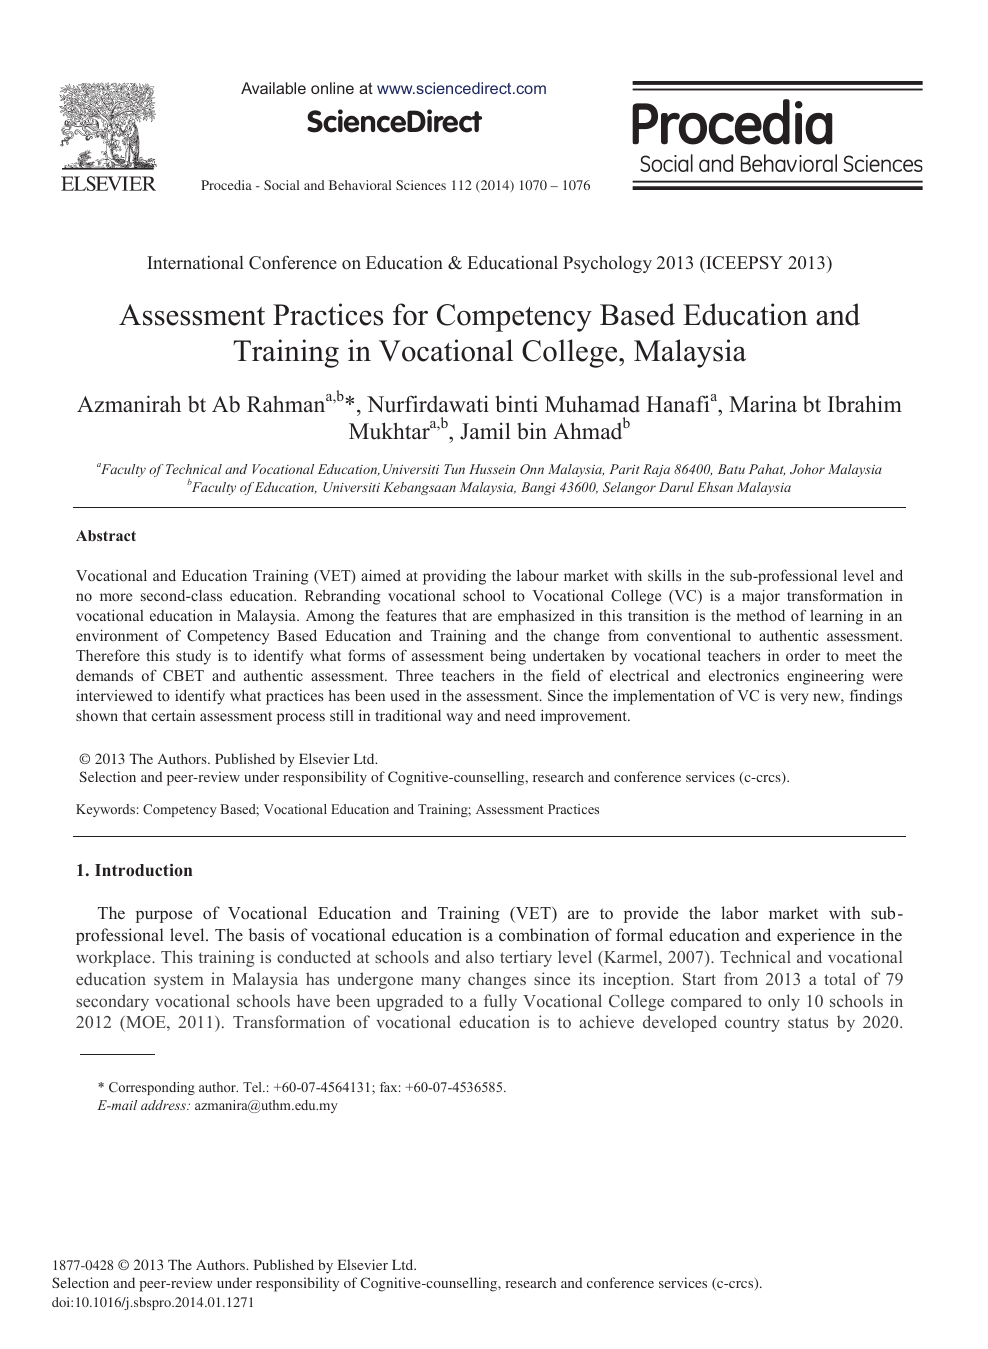 Assessment Practices for Competency based Education and Training in